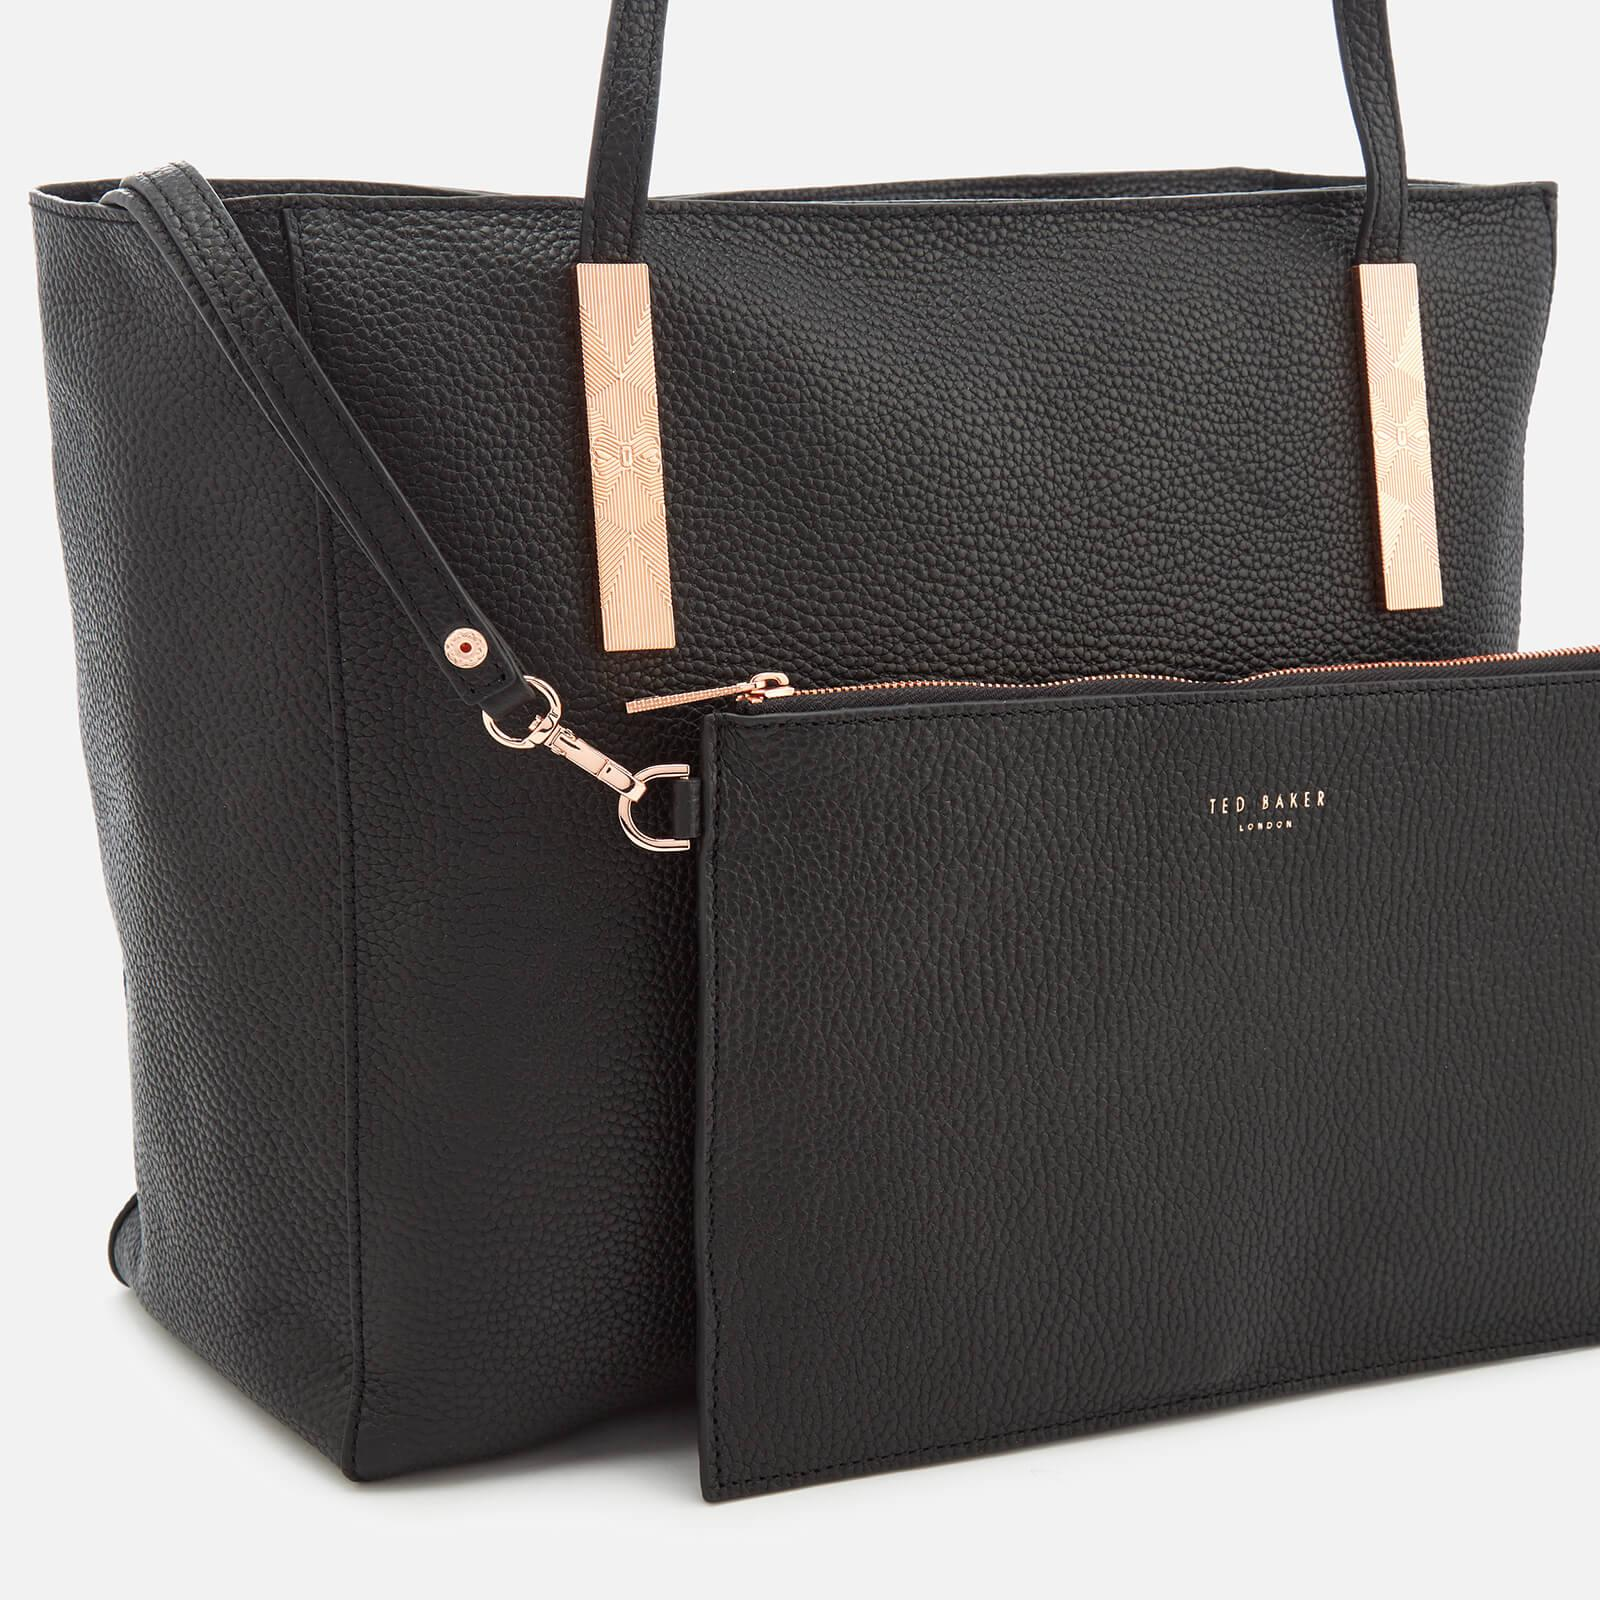 Ted Baker Leather Paigie Soft Grain Large Zip Tote Bag in Black